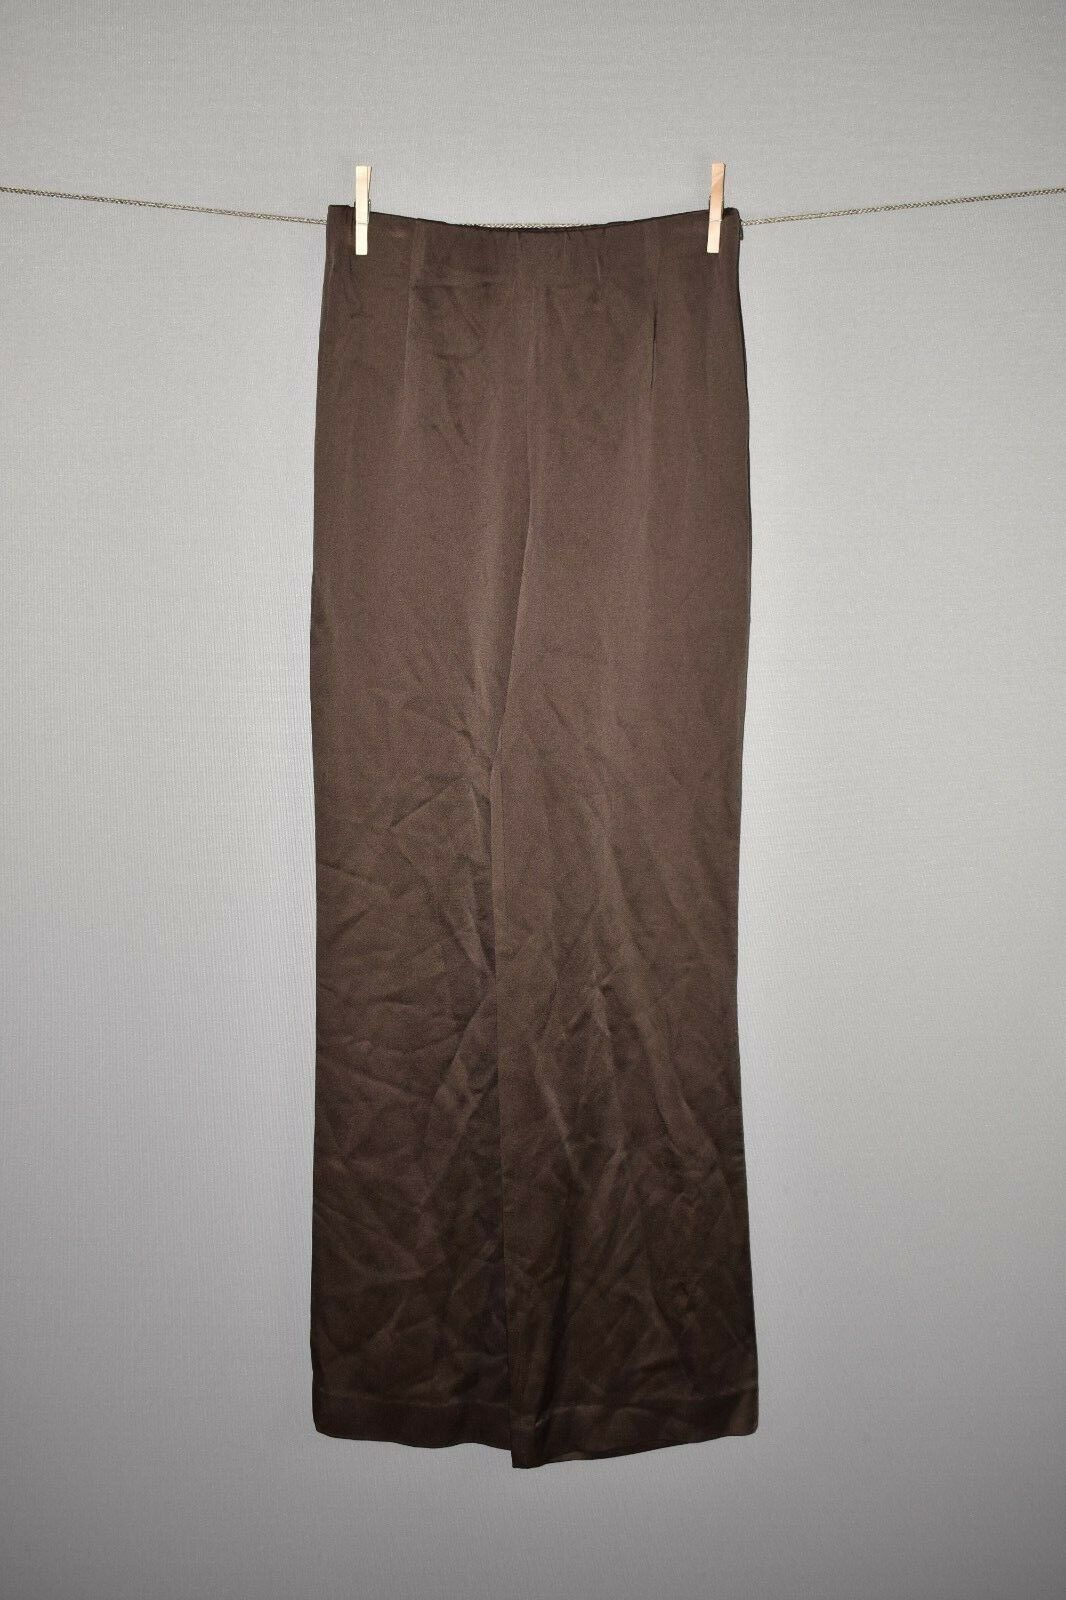 LAFAYETTE 148 NEW YORK NEW  348 Espresso Luxe Crepe Wide Leg Pant Size 4